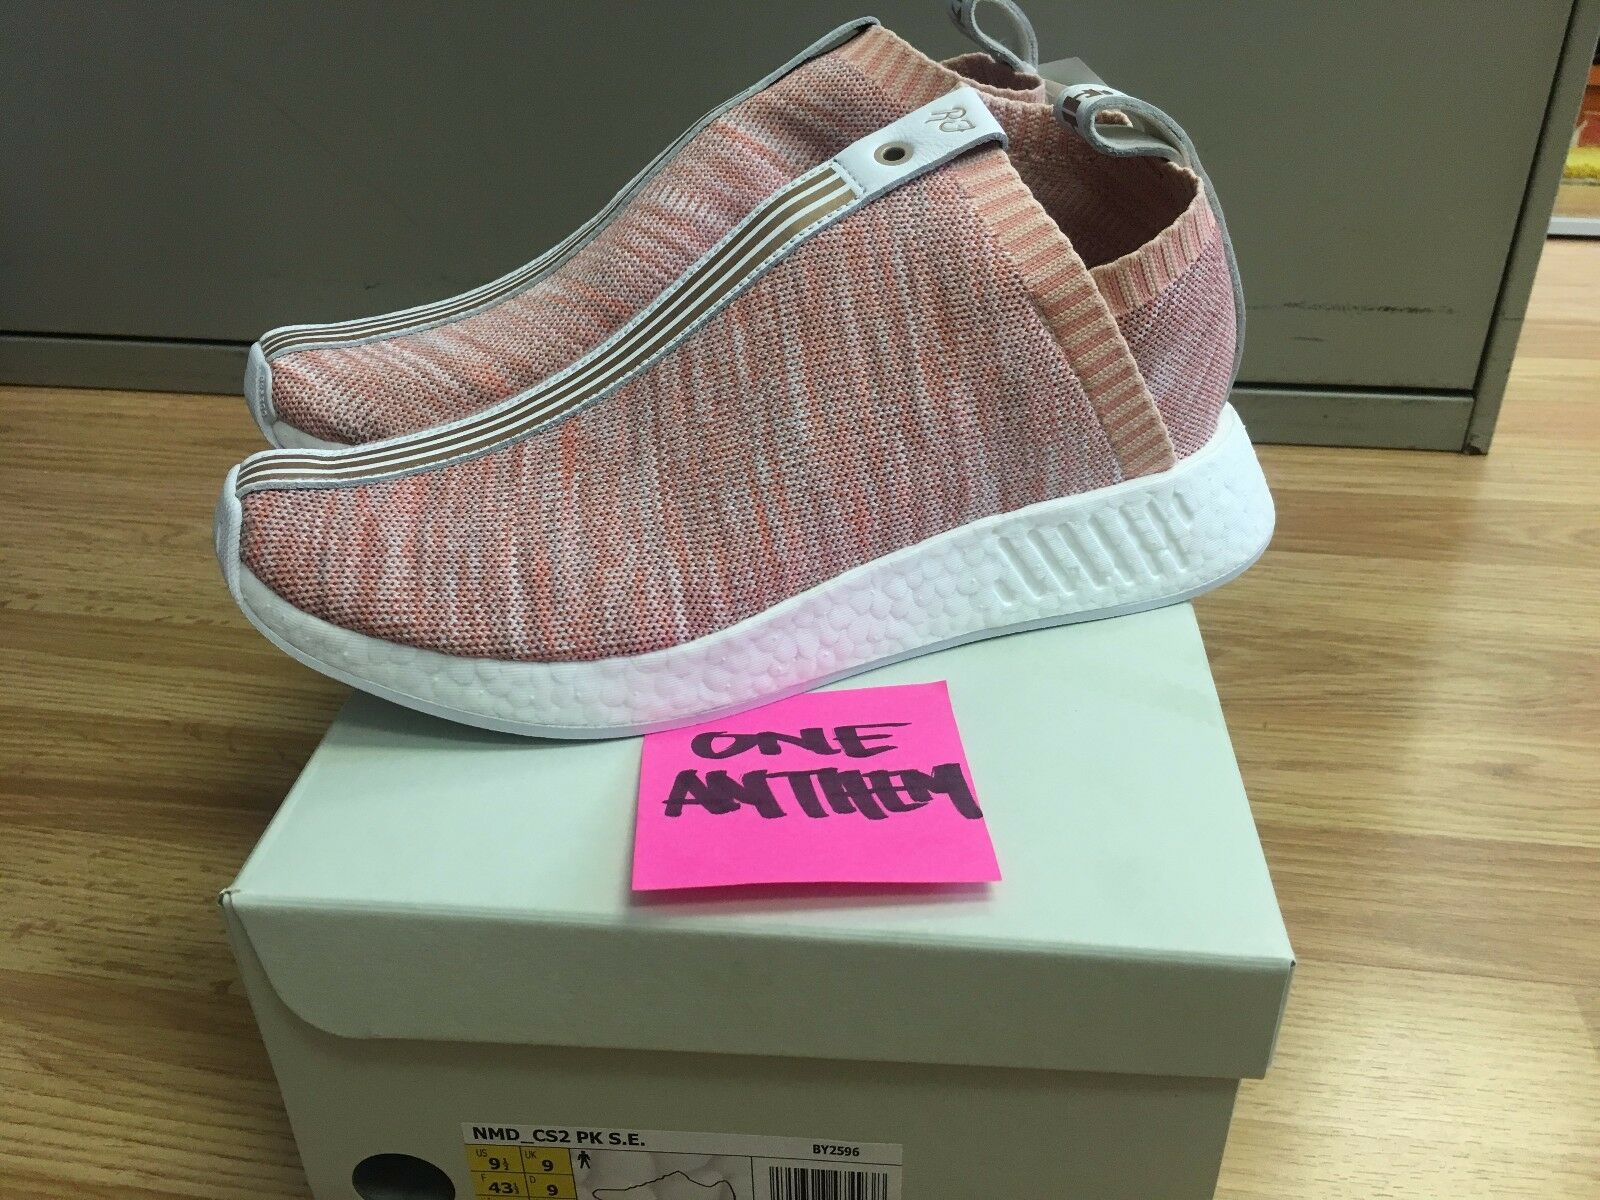 NAKED X KITH X ADIDAS CONSORTIUM NMD CS2 BY2596 PINK sz 9.5